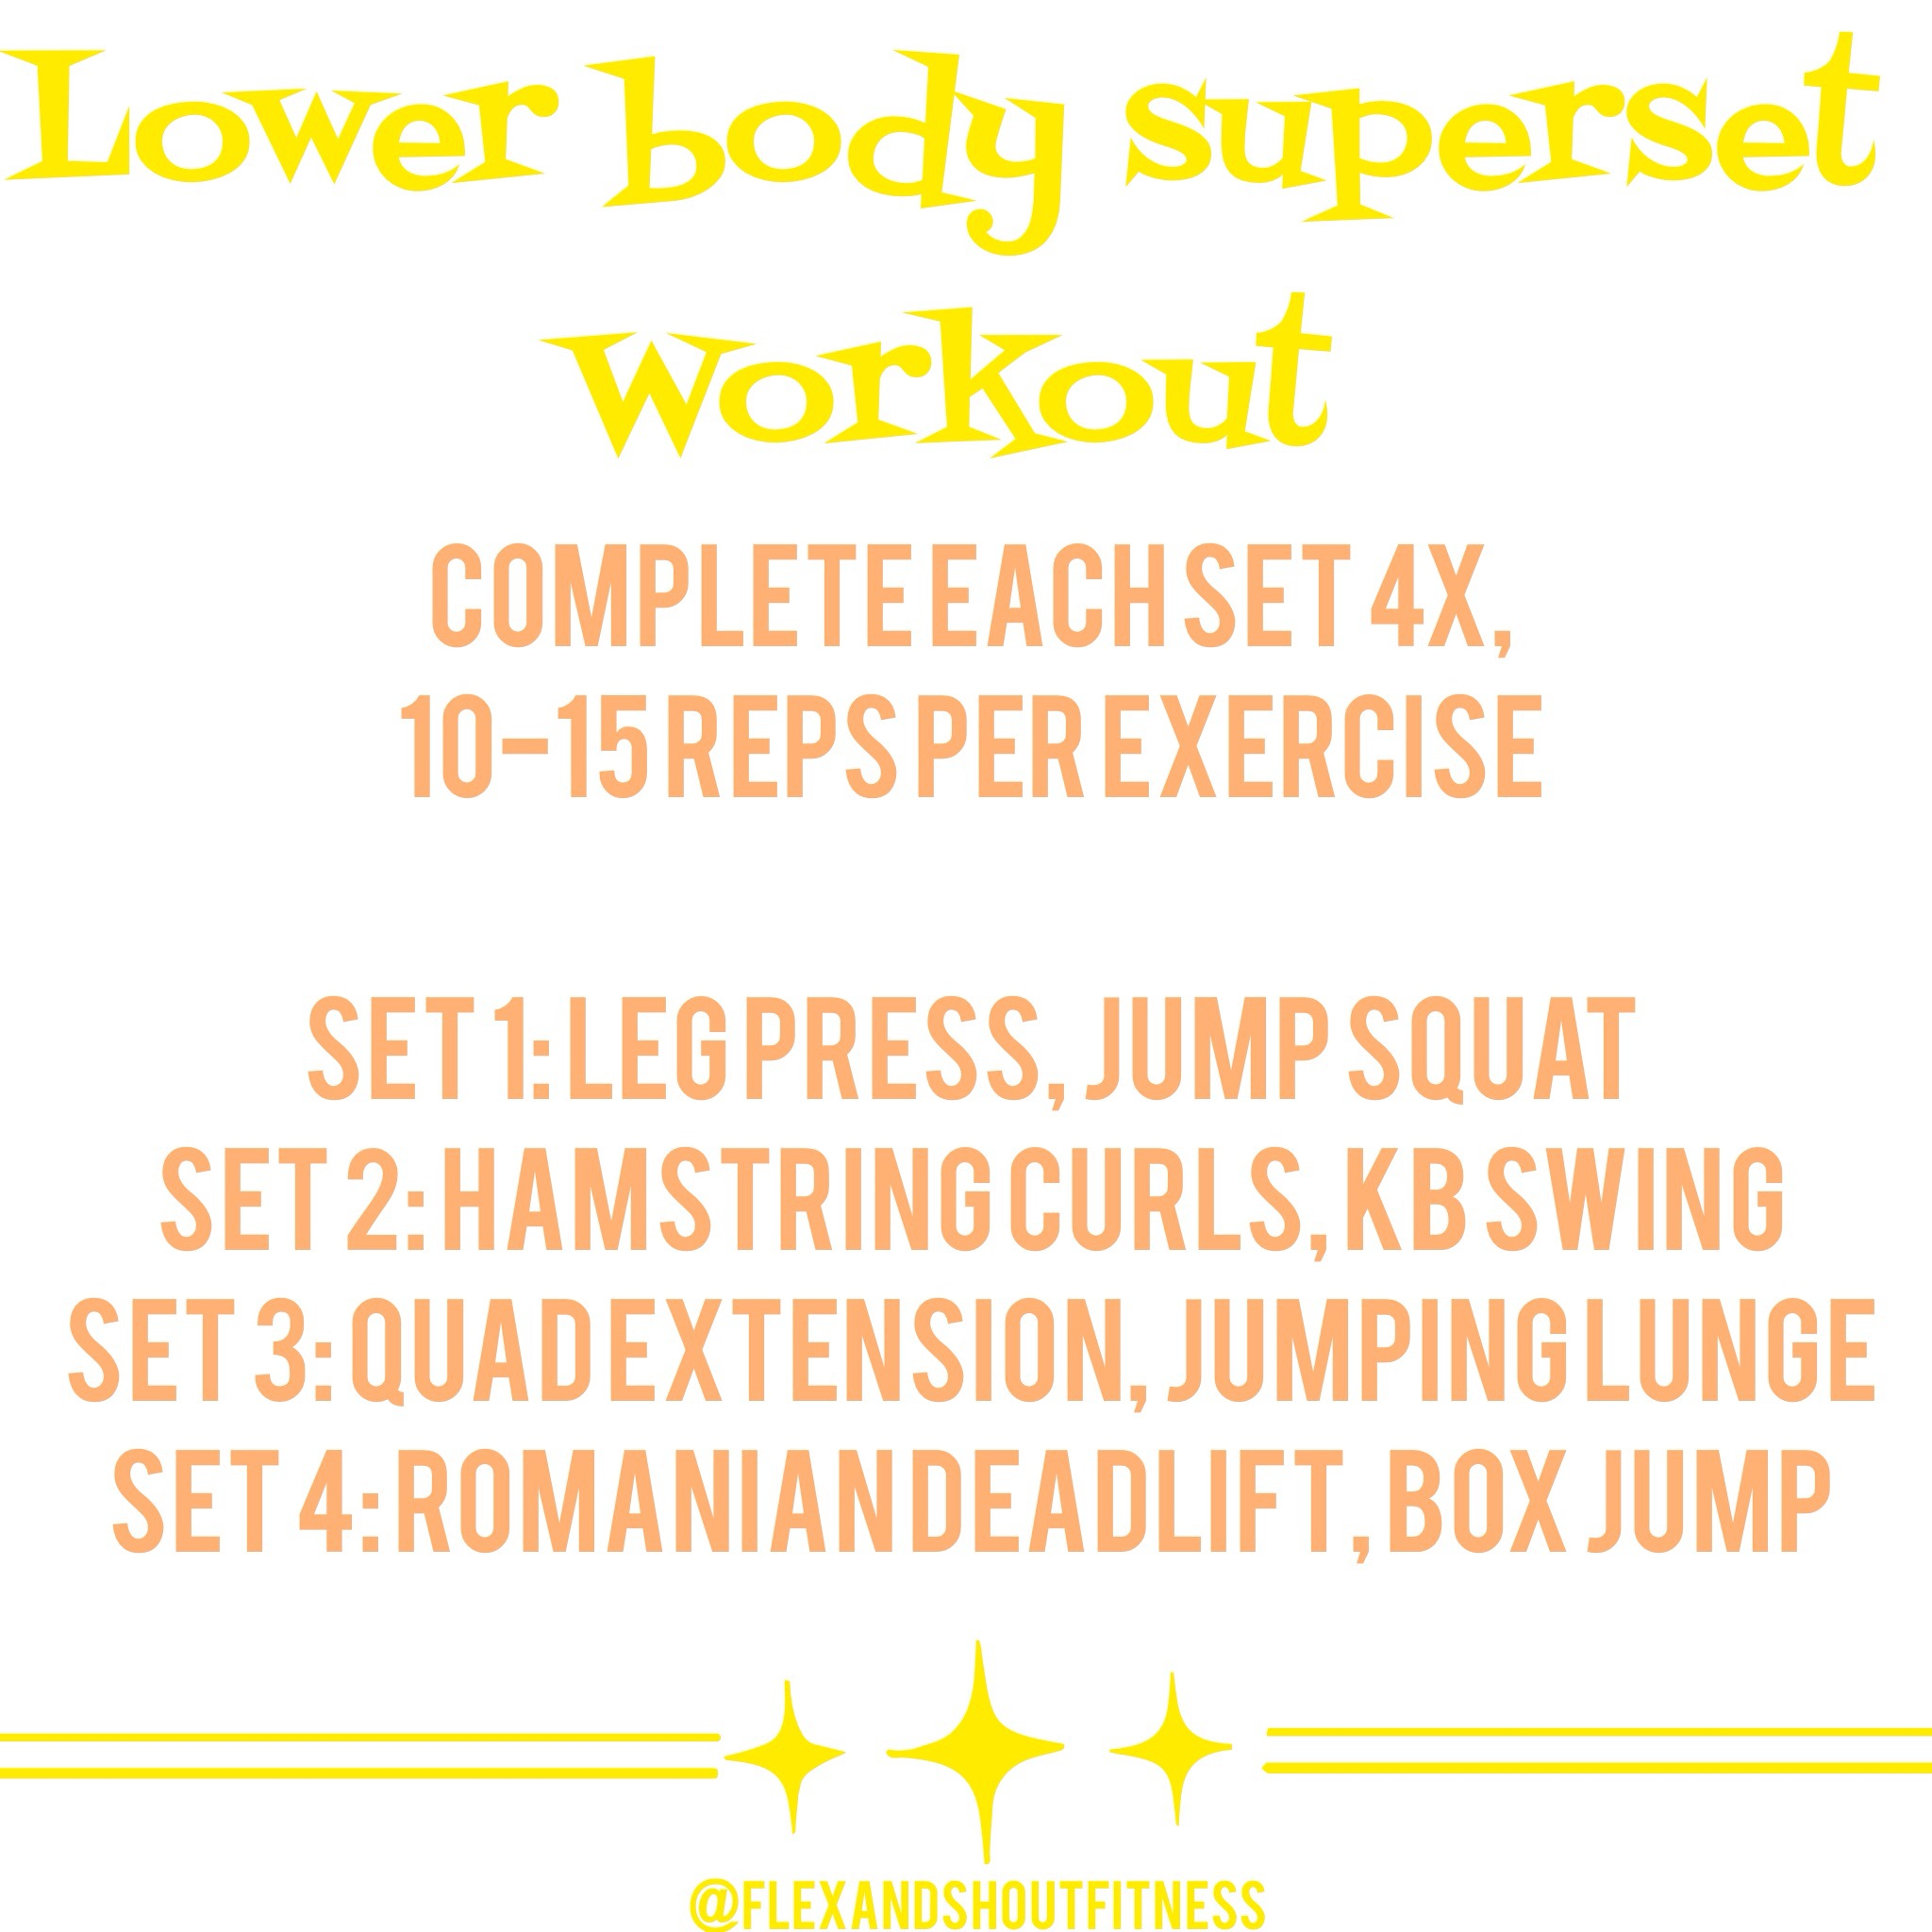 Quads Flex And Shout Fitness Superset Style Circuit Bootcamp Workout Ideas Lower Body Super Set